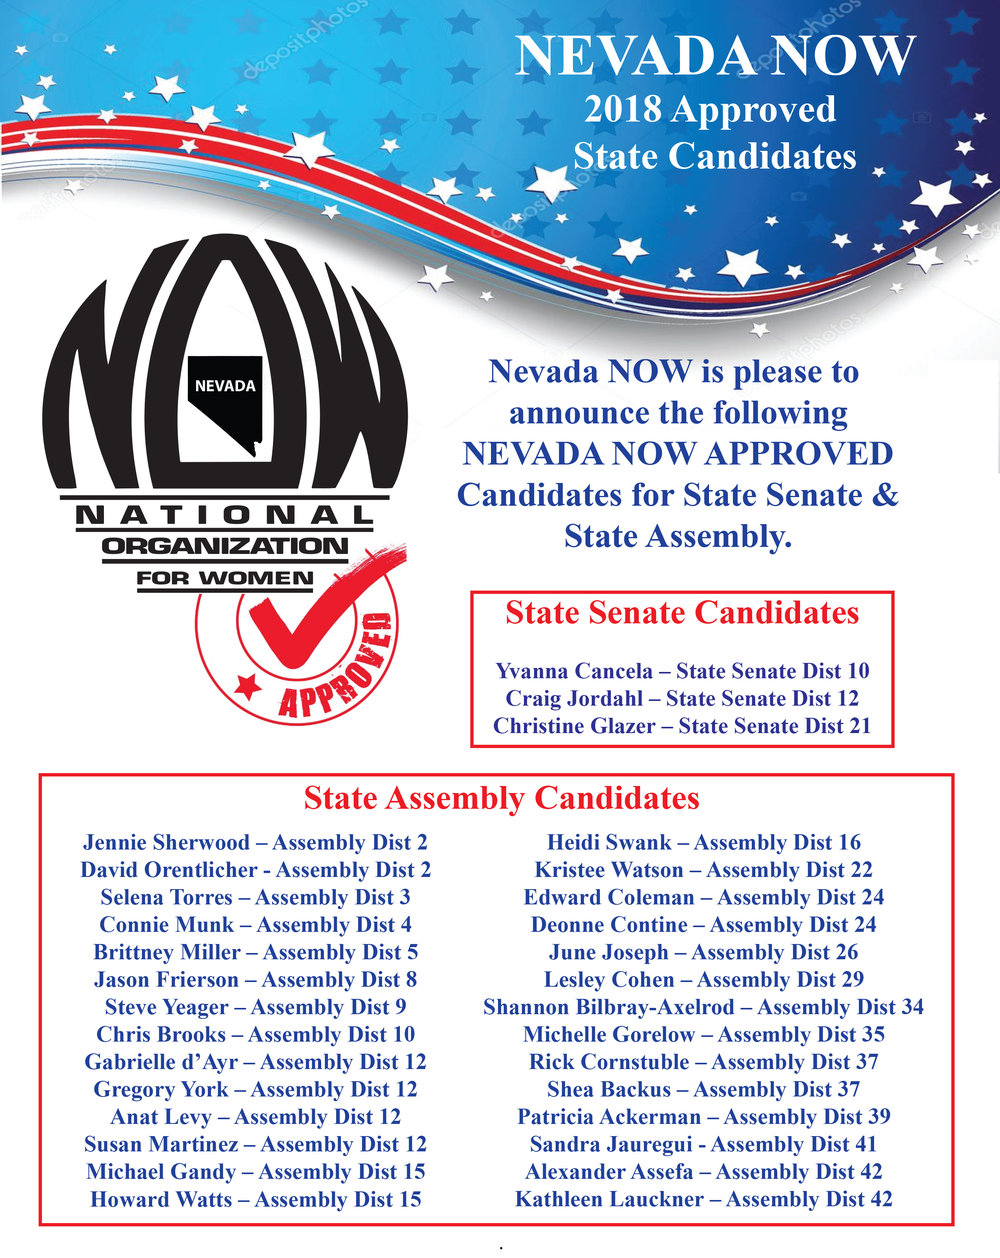 Nevada NOW State Approved Candidates-2.jpg